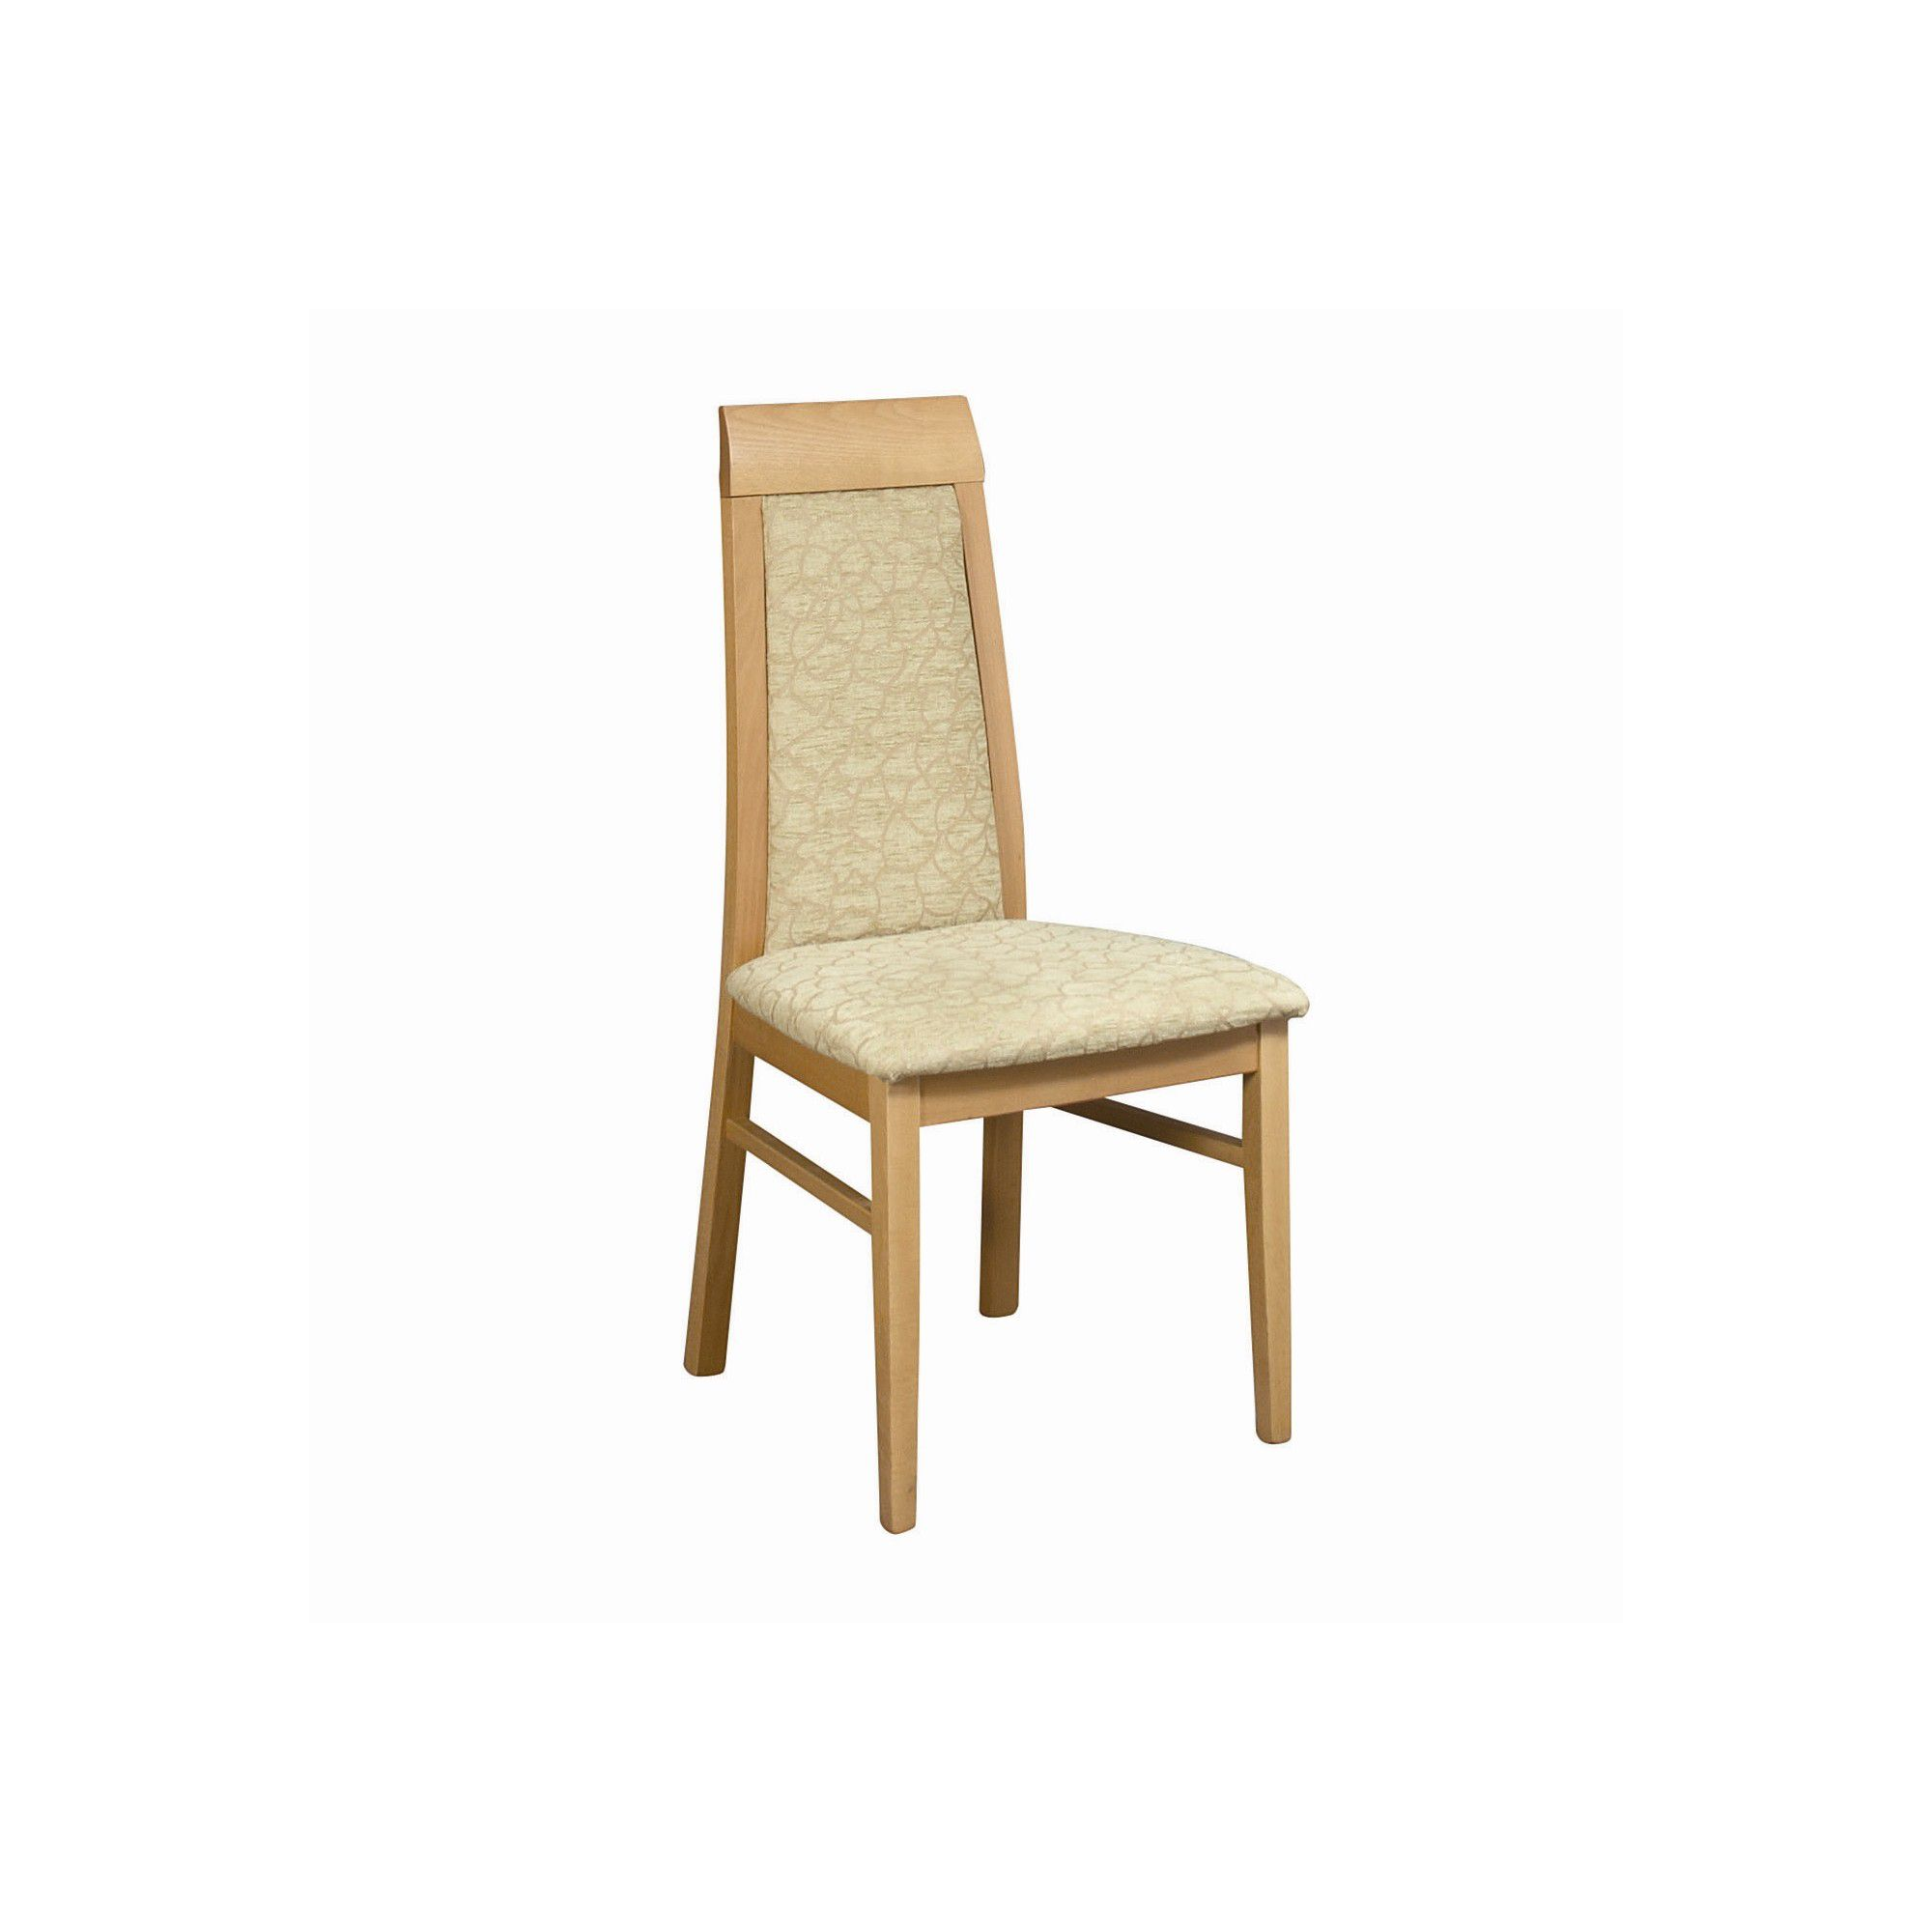 Other Caxton Huxley Upholstered Dining Chair in Light Oak